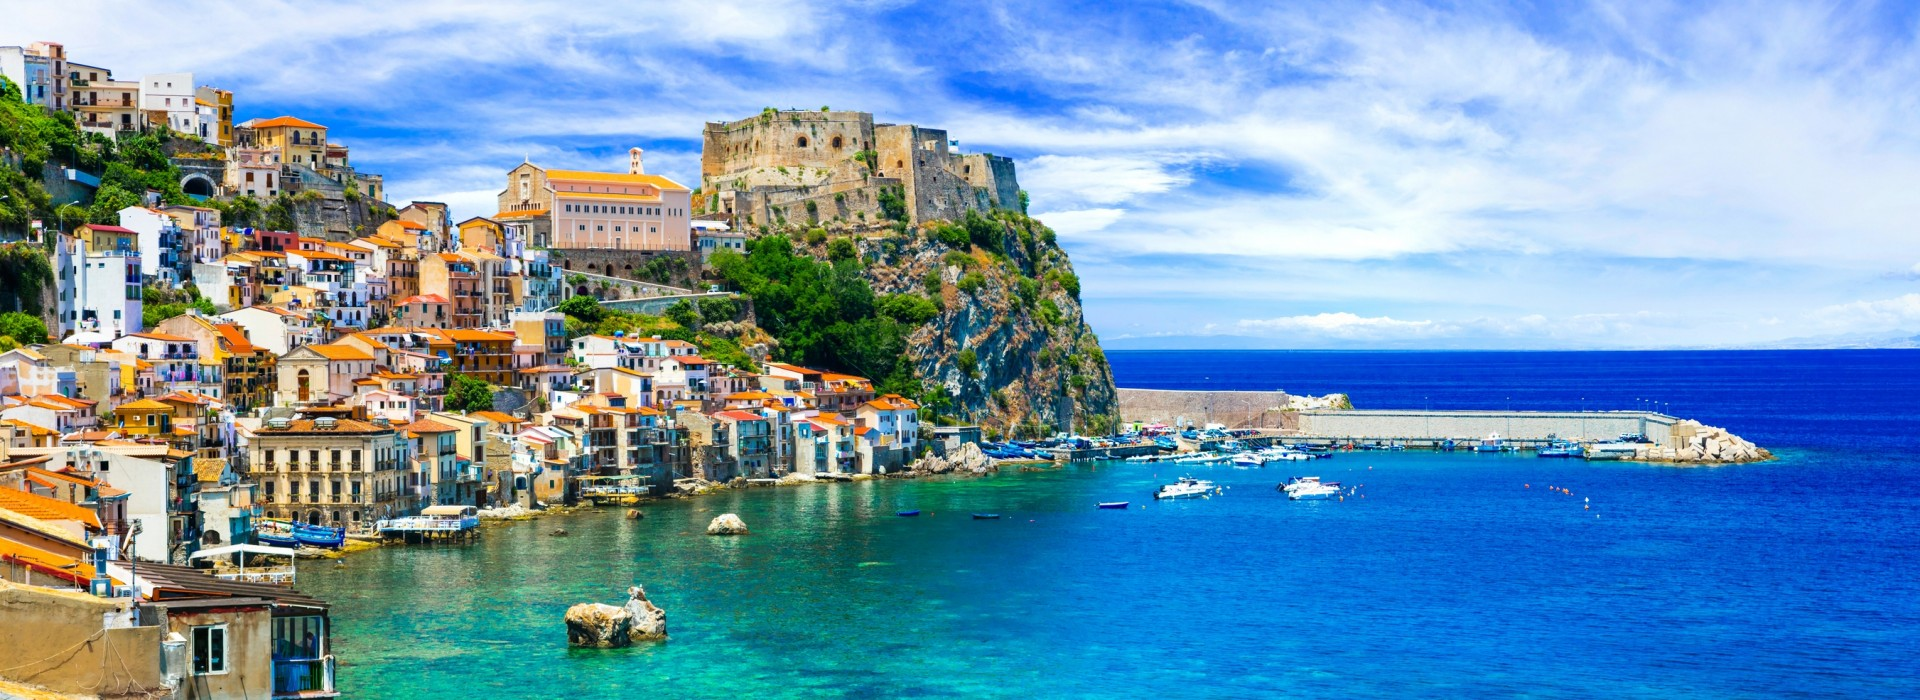 Full of amazing coastal paths, incredible beaches and awe-inspiring archaeological sites,  a trip to Sicily is  must.